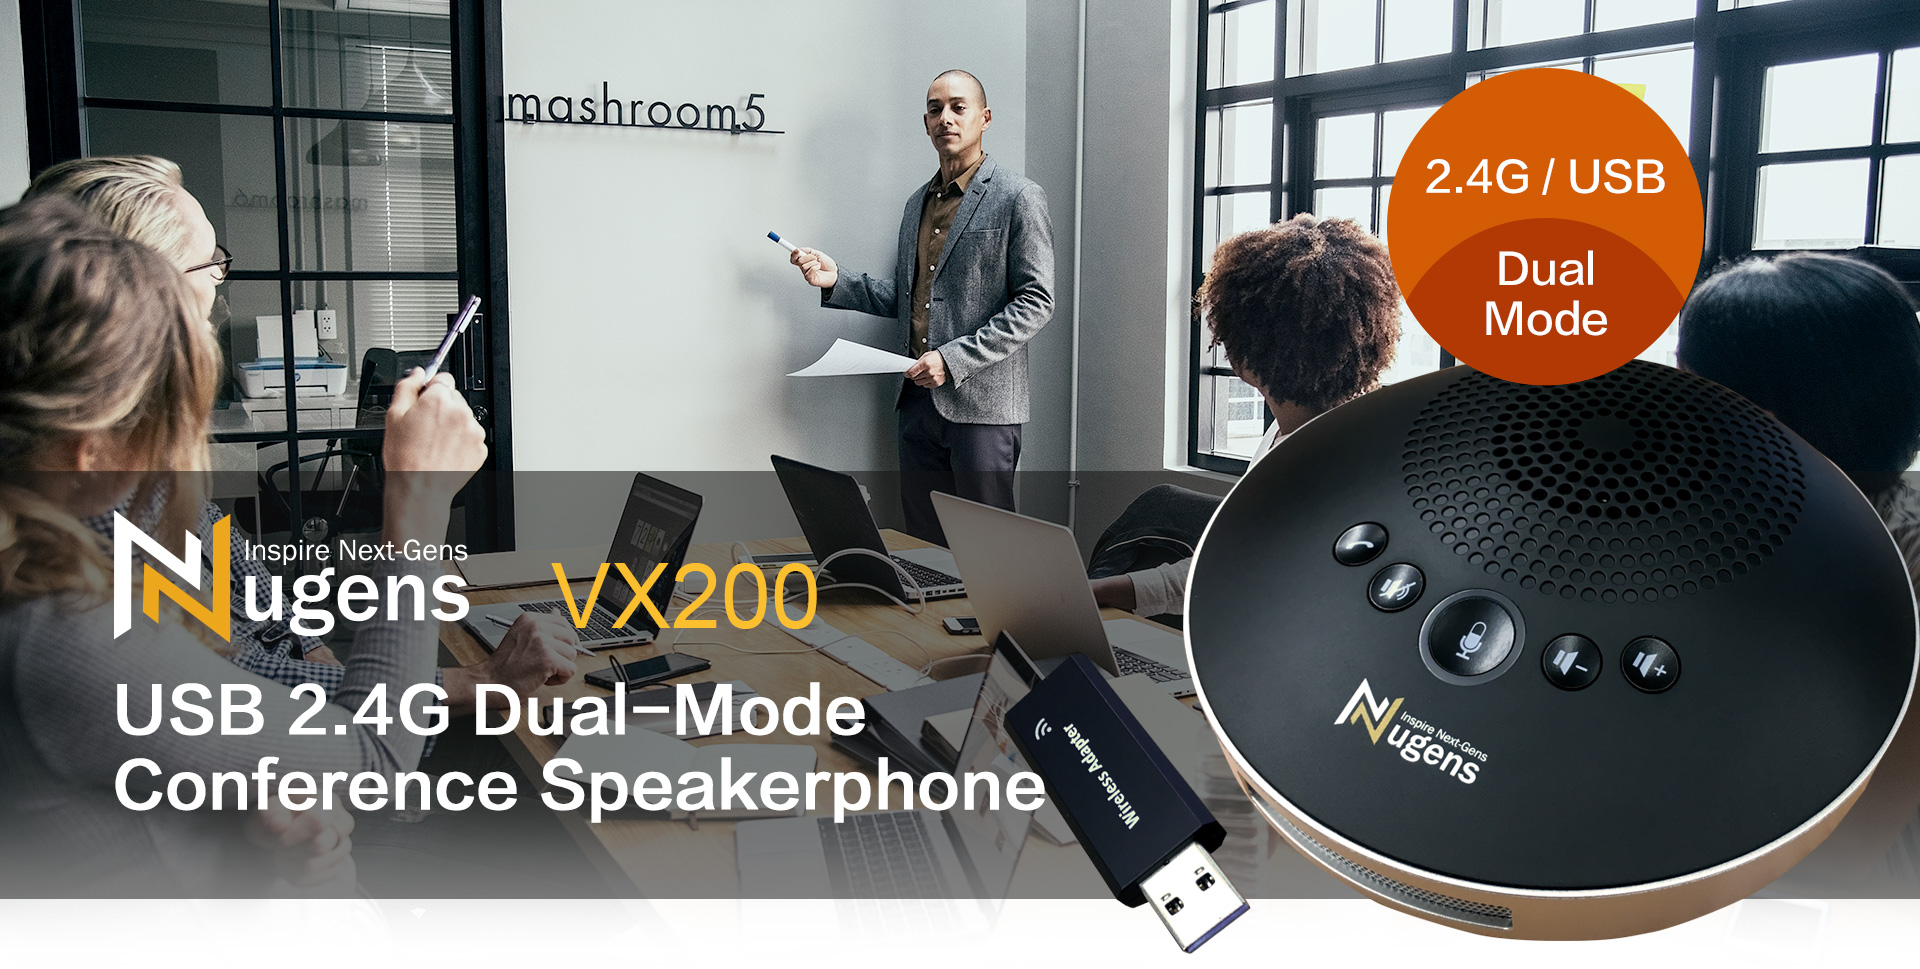 USB 2.4G Dual-Mode Conference Speakerphone